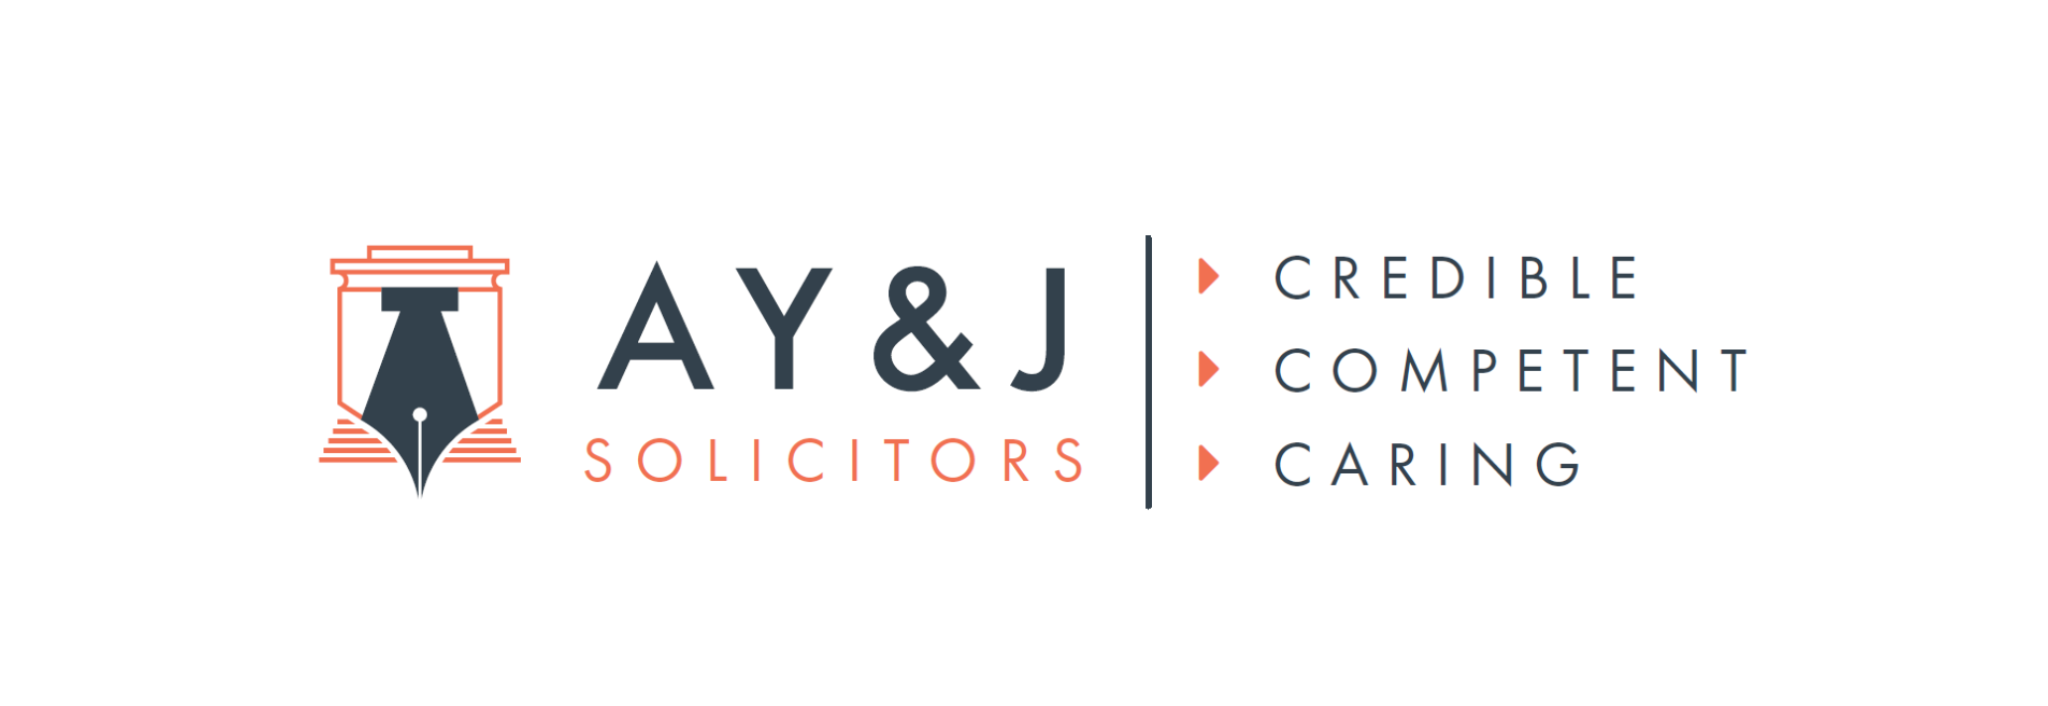 Job ad: A Y & J Solicitors